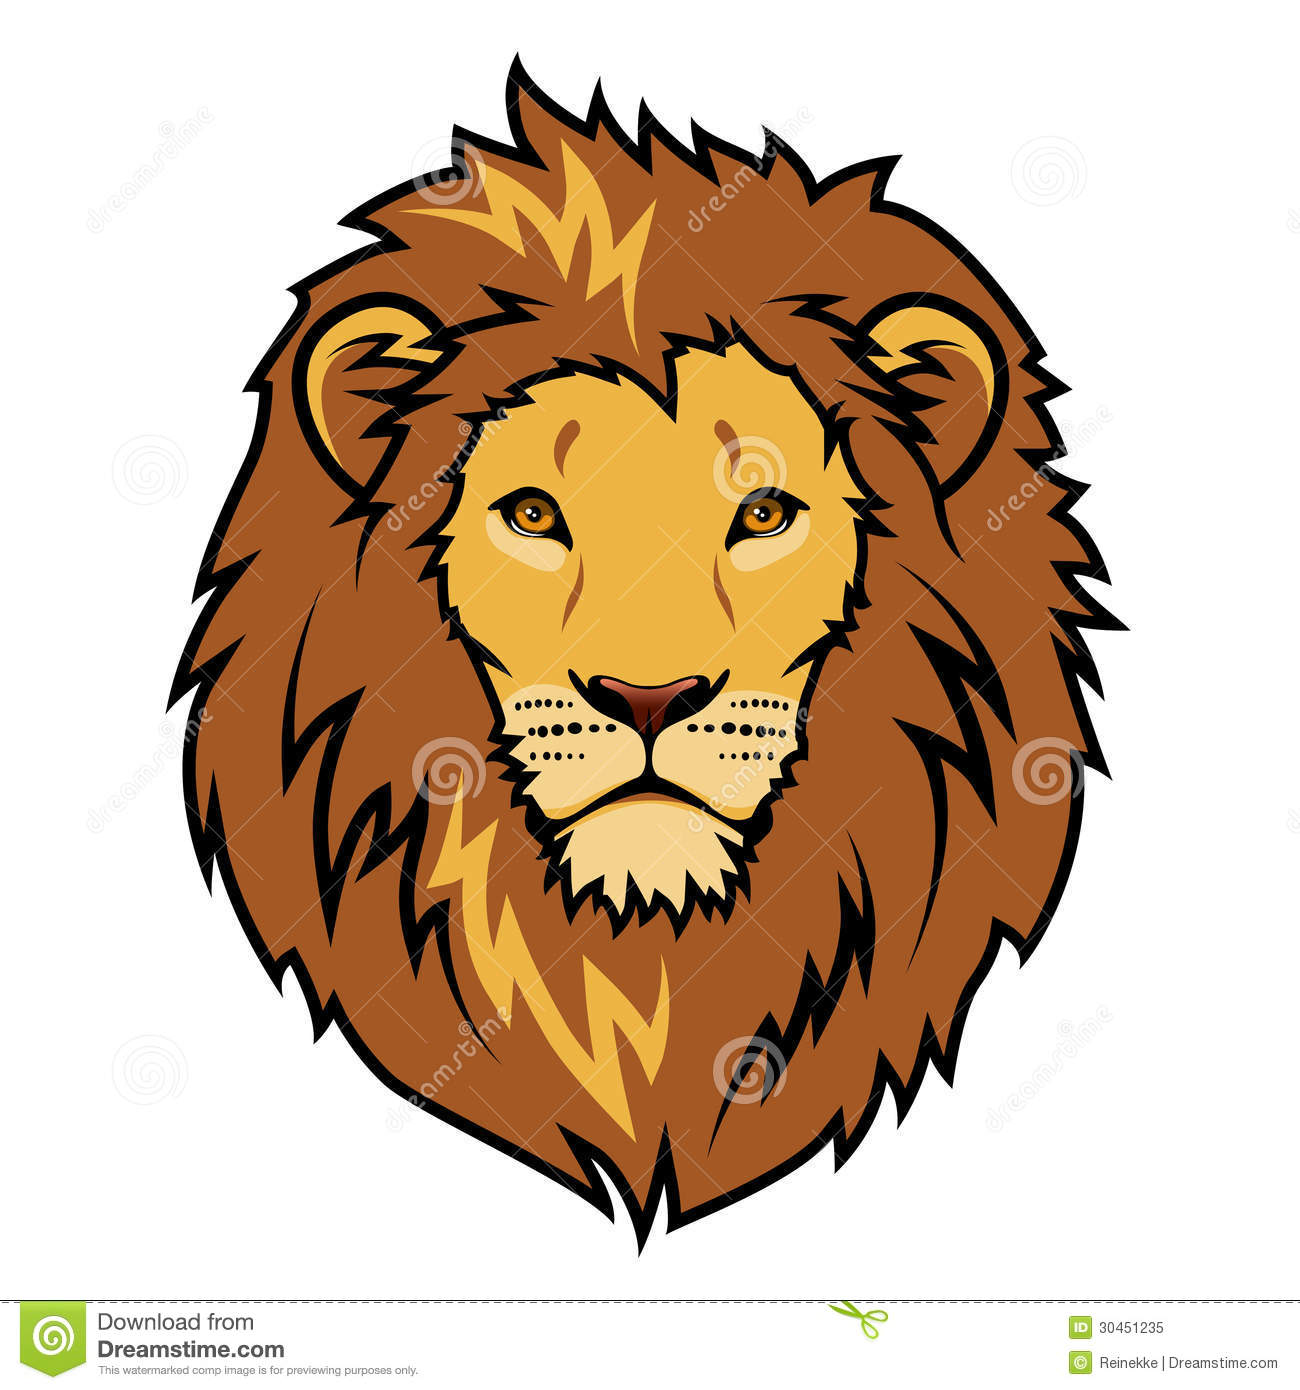 Lions Head Royalty Free Stock Photo - Image: 30451235